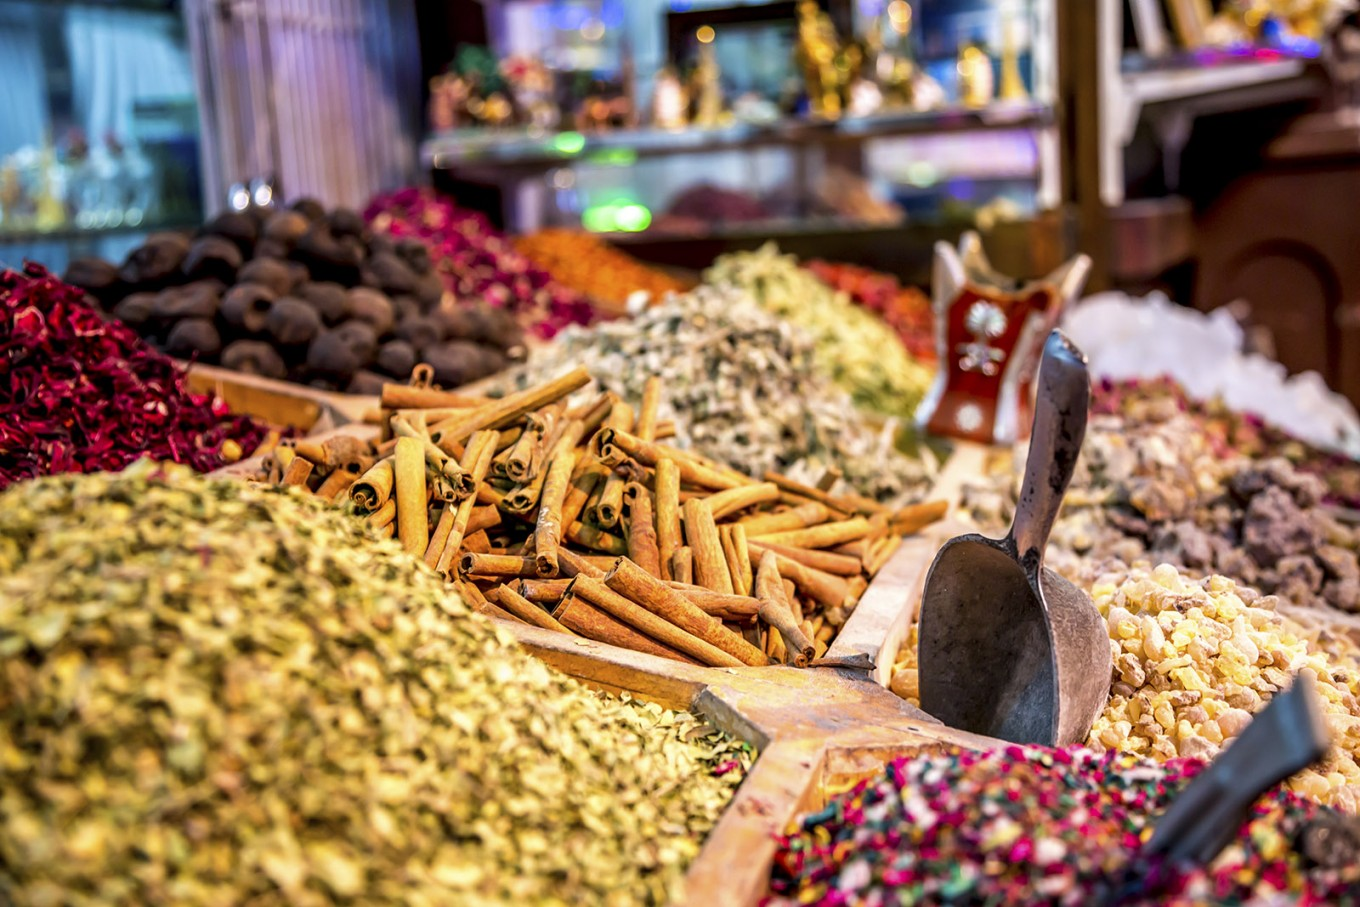 The typical spices at souk shops.